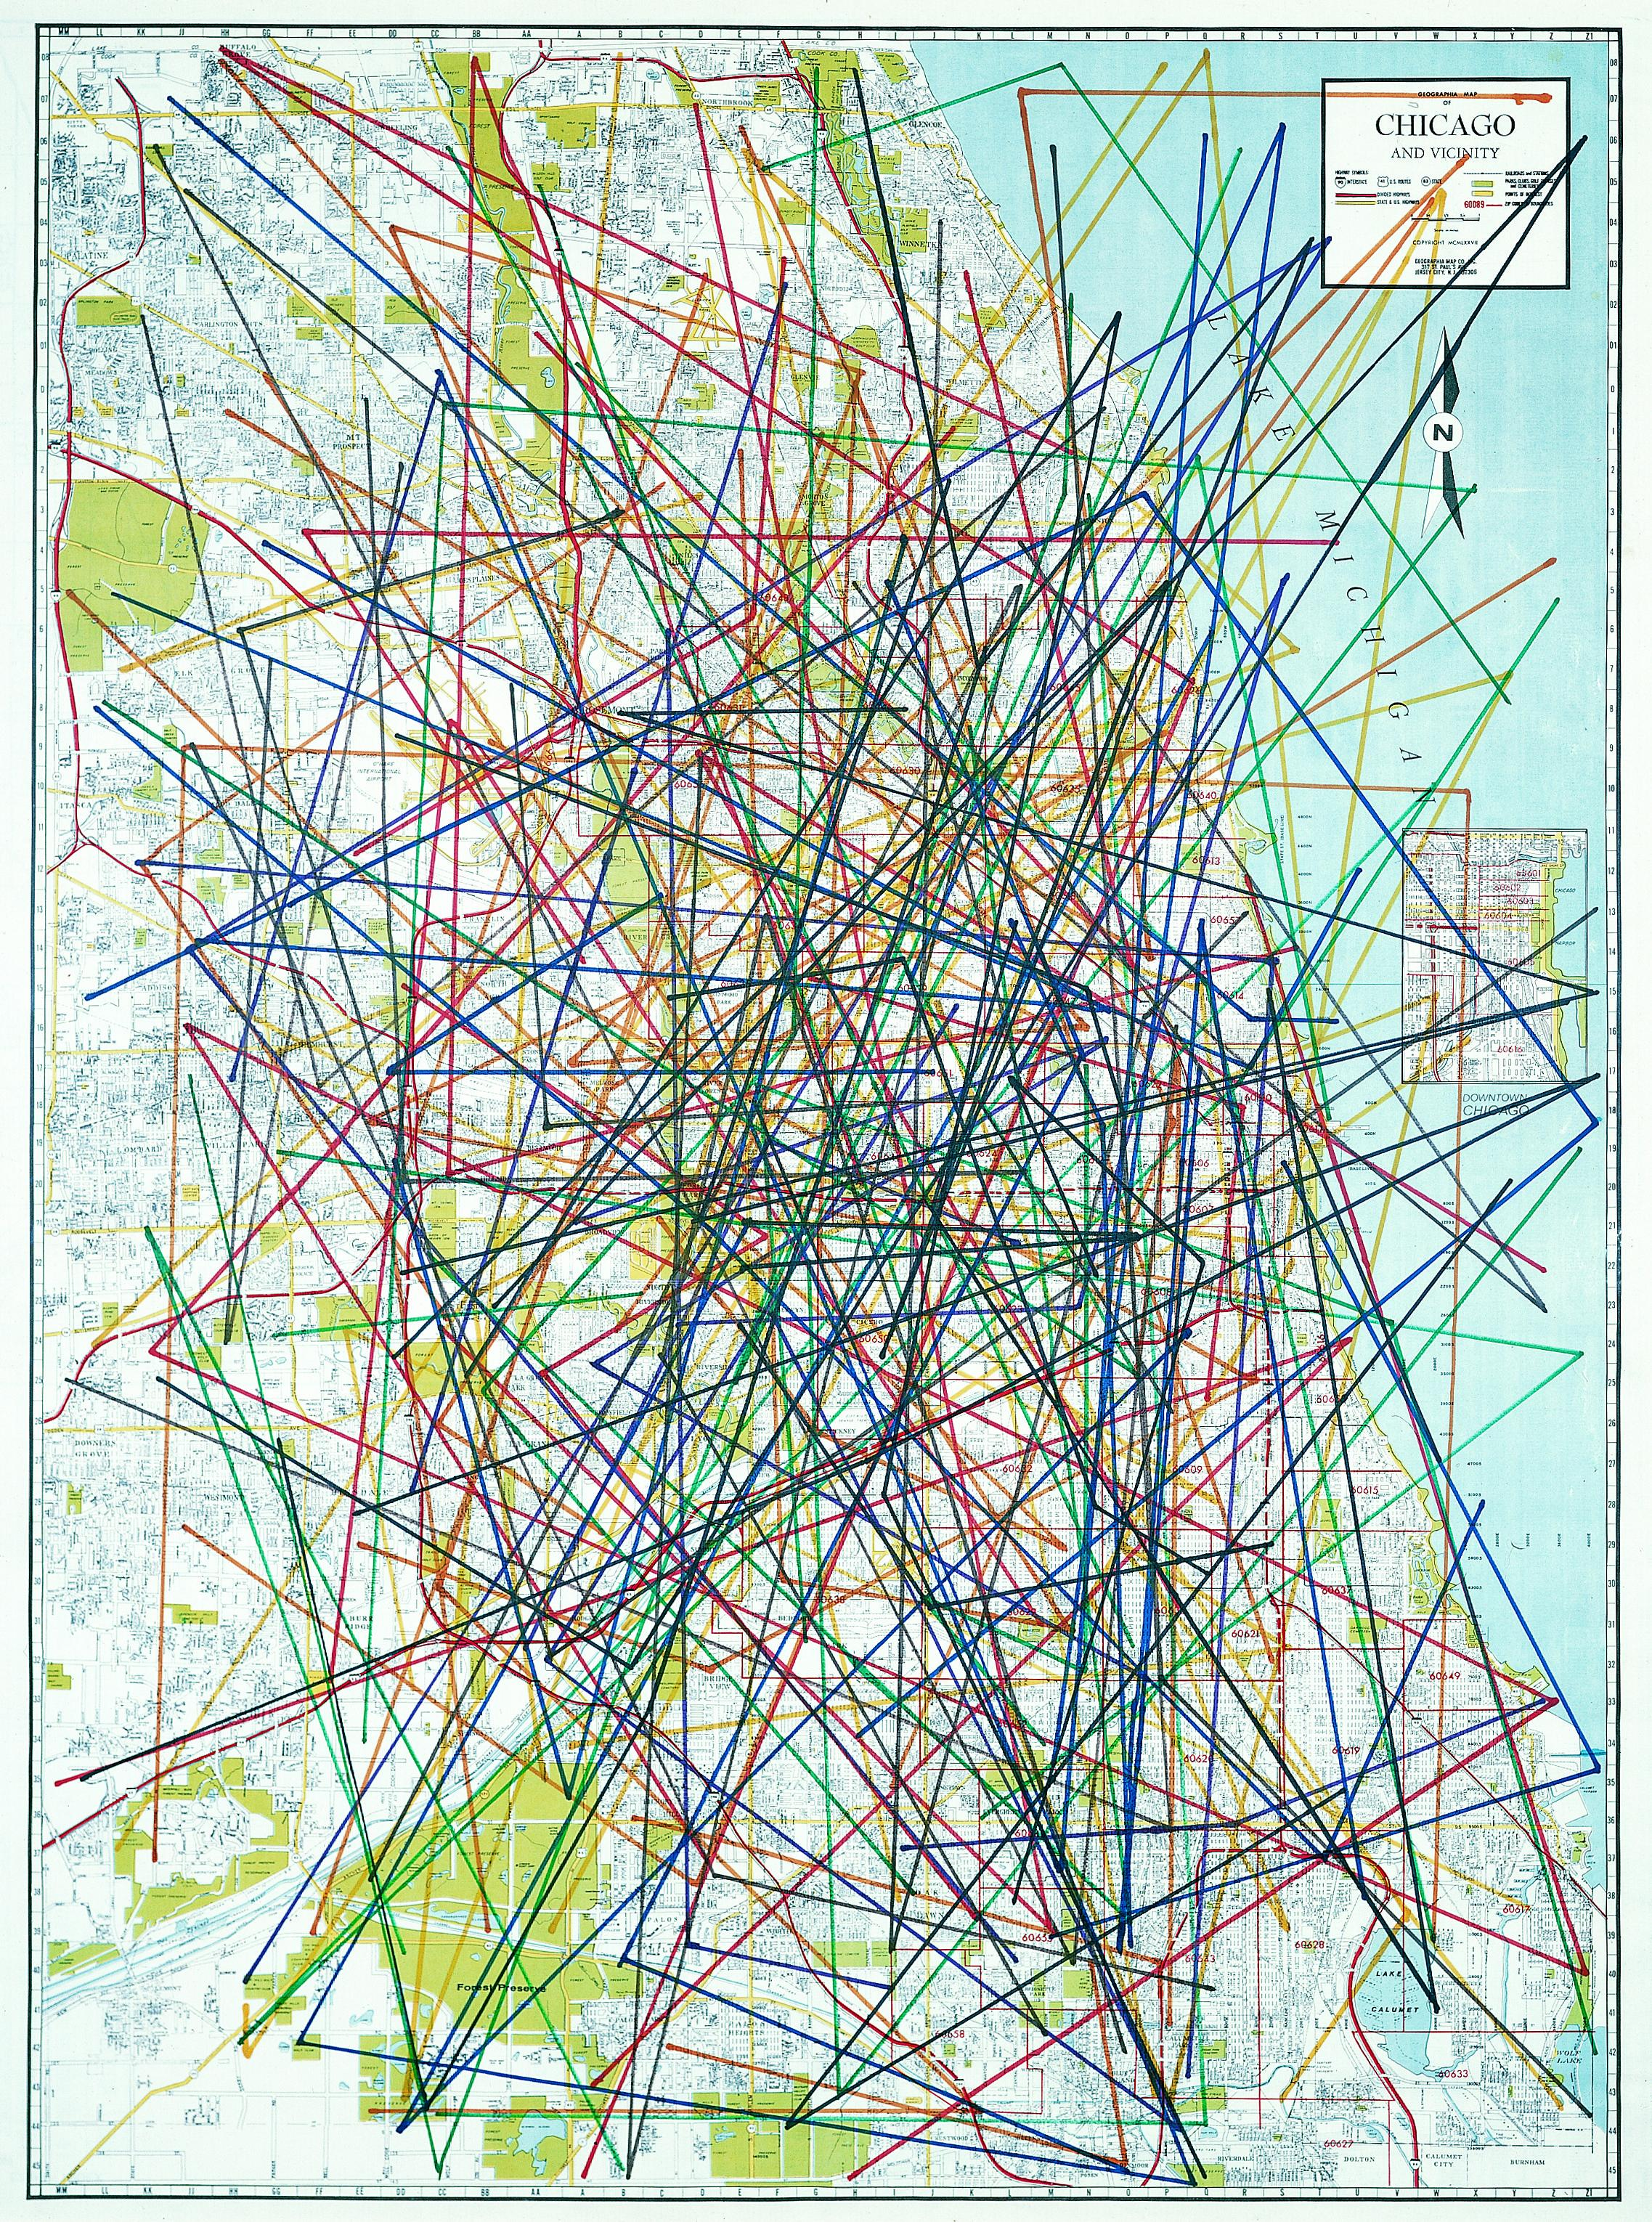 A map of the Chicagoland area is crisscrossed by many dozens of multi-colored marker lines.